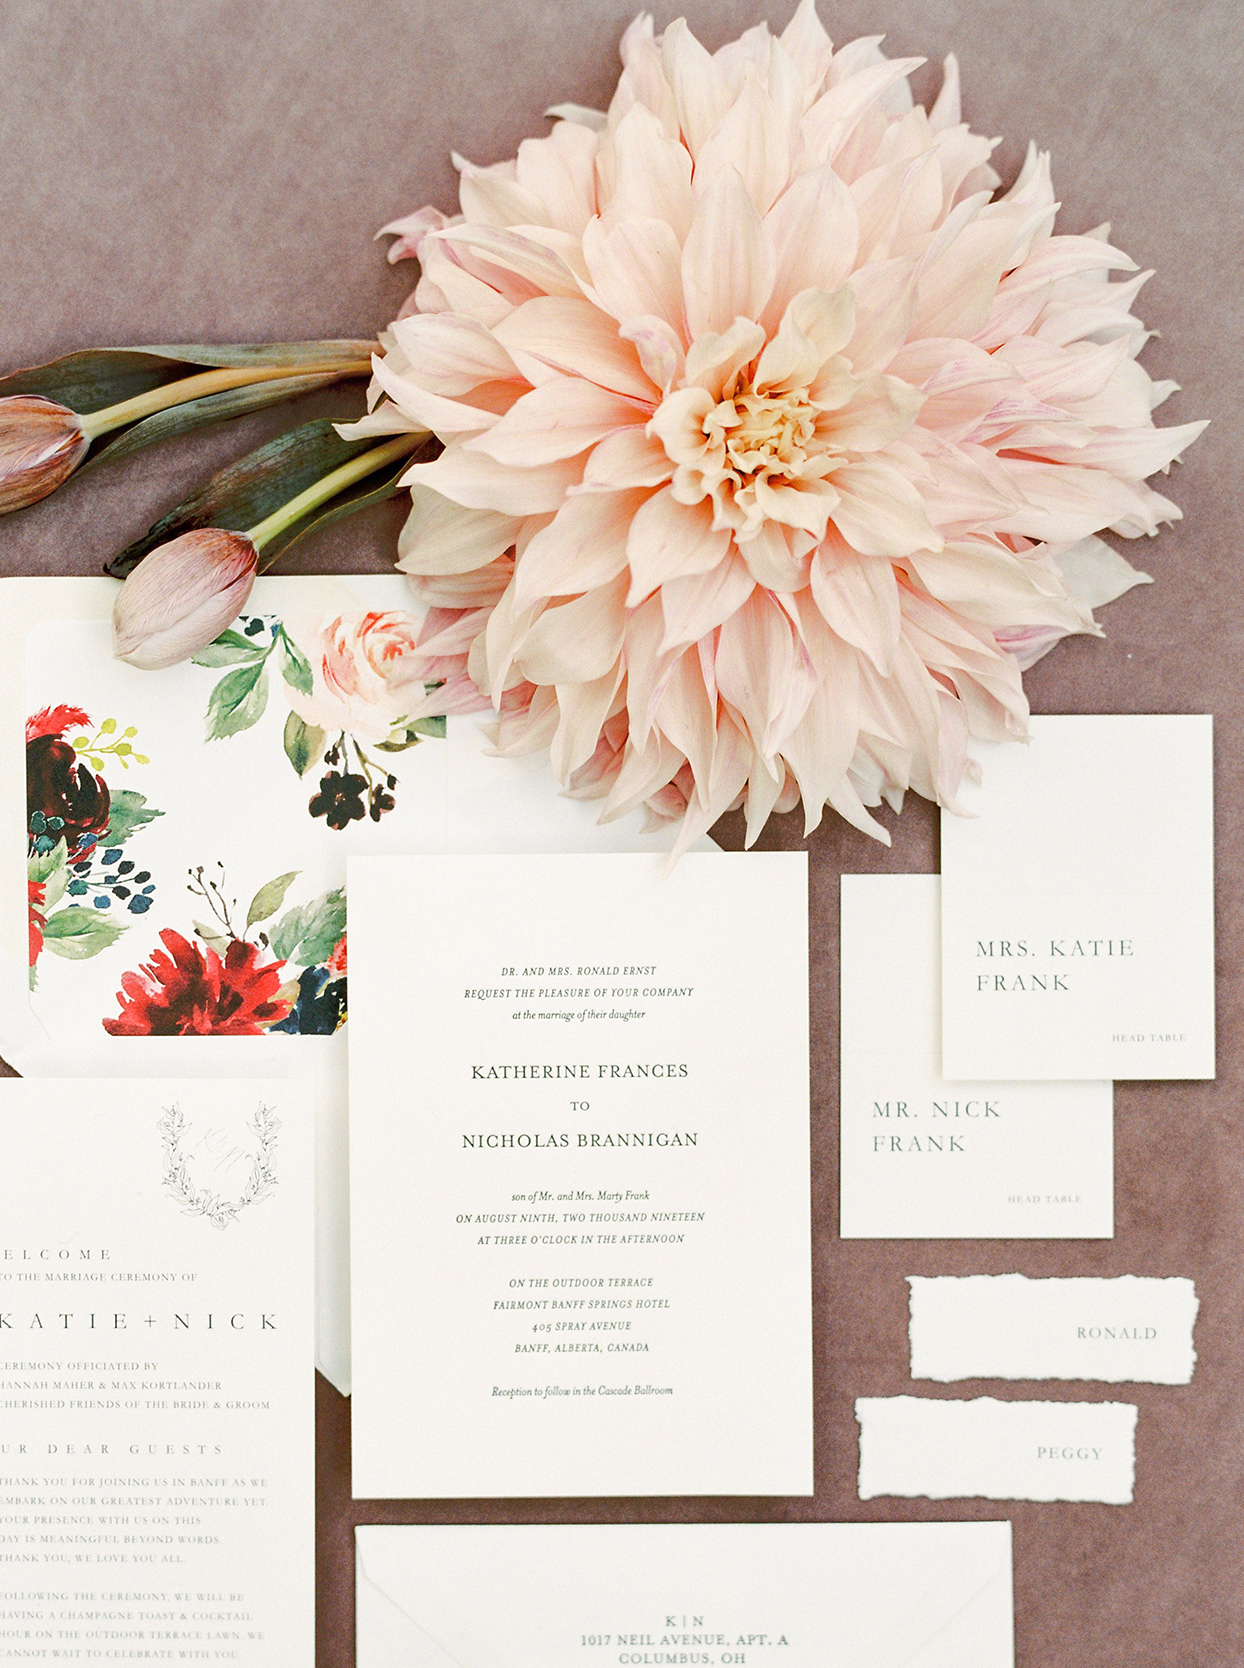 katie nicholas wedding invitations and flower